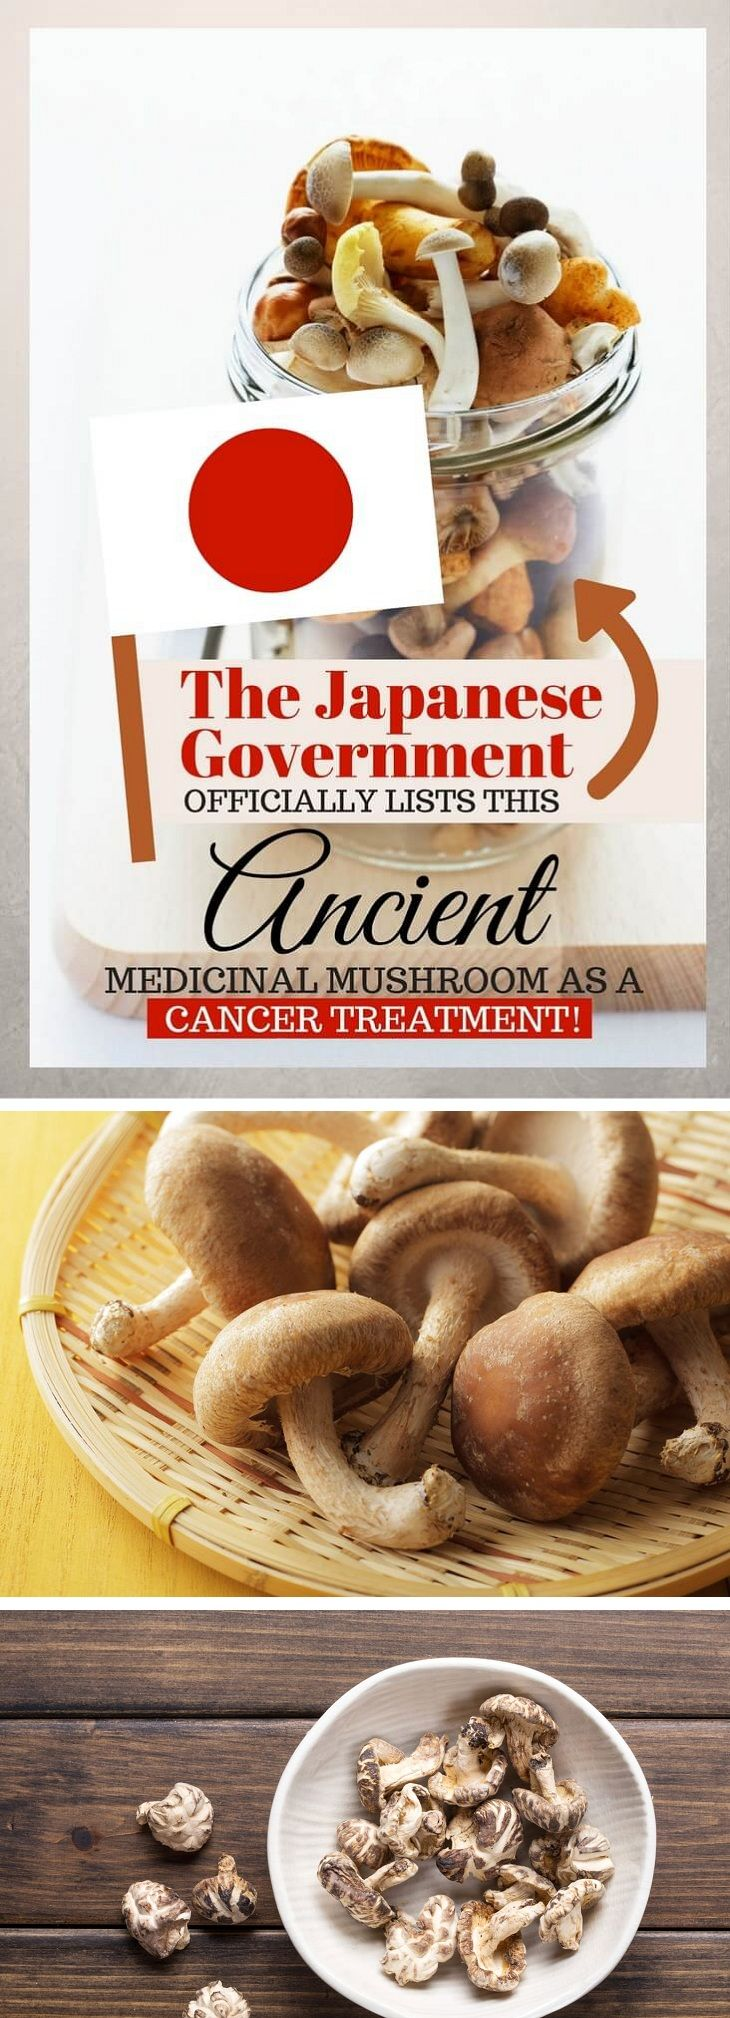 The Japanese Government Officially Lists This Ancient Medicinal Mushroom as a Cancer Treatment